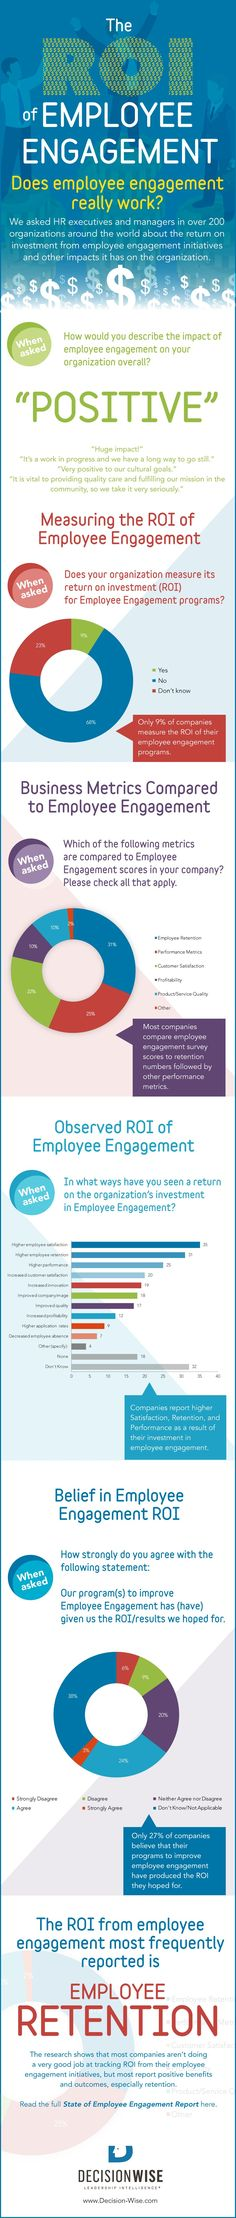 What's the payoff of employee engagement initiatives within an organization? Does employee engagement really work? Find out more in this infographic.